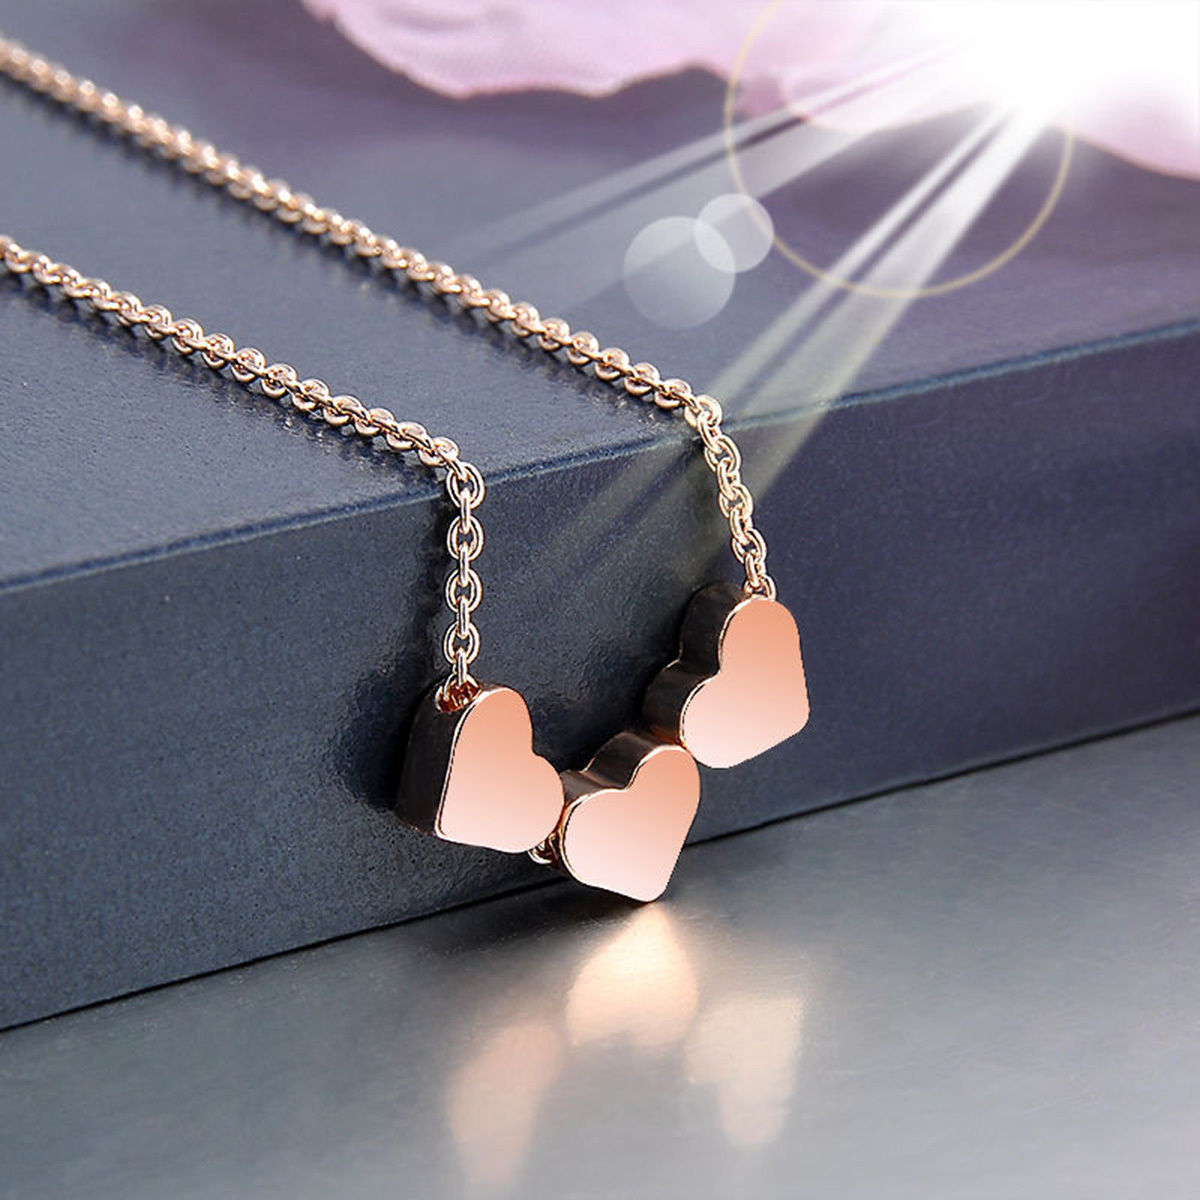 Fashion New Stainless Steel Women Jewelry Three Heart Charms Pendant Necklace - $10.99